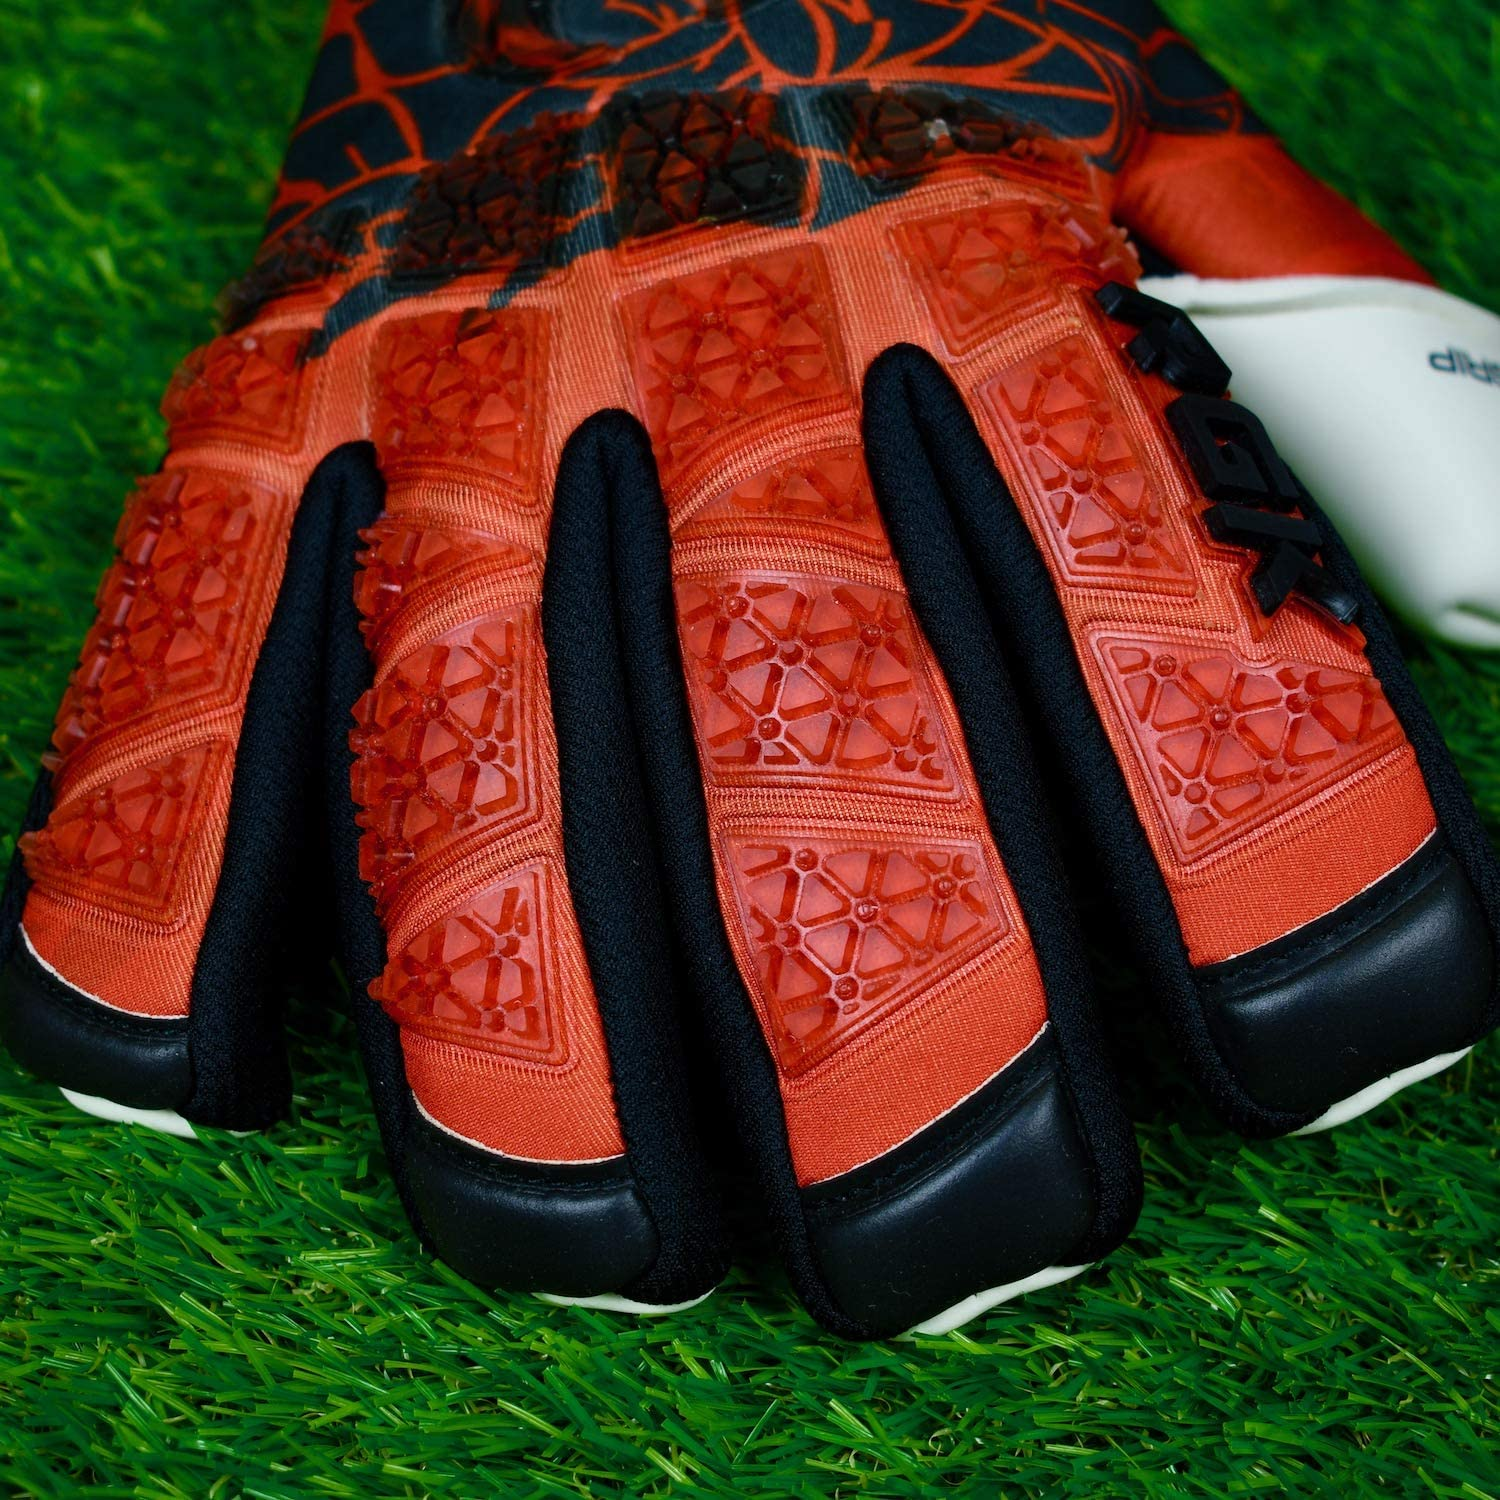 Renegade GK Limited Edition Rogue Soccer Goalie Gloves with Microbe-Guard Sizes 6-11, Level 4+ Pro-Tek Fingersaves /& 4+3MM Giga Grip Based in The U.S.A. Only 1500 Made for Each Style